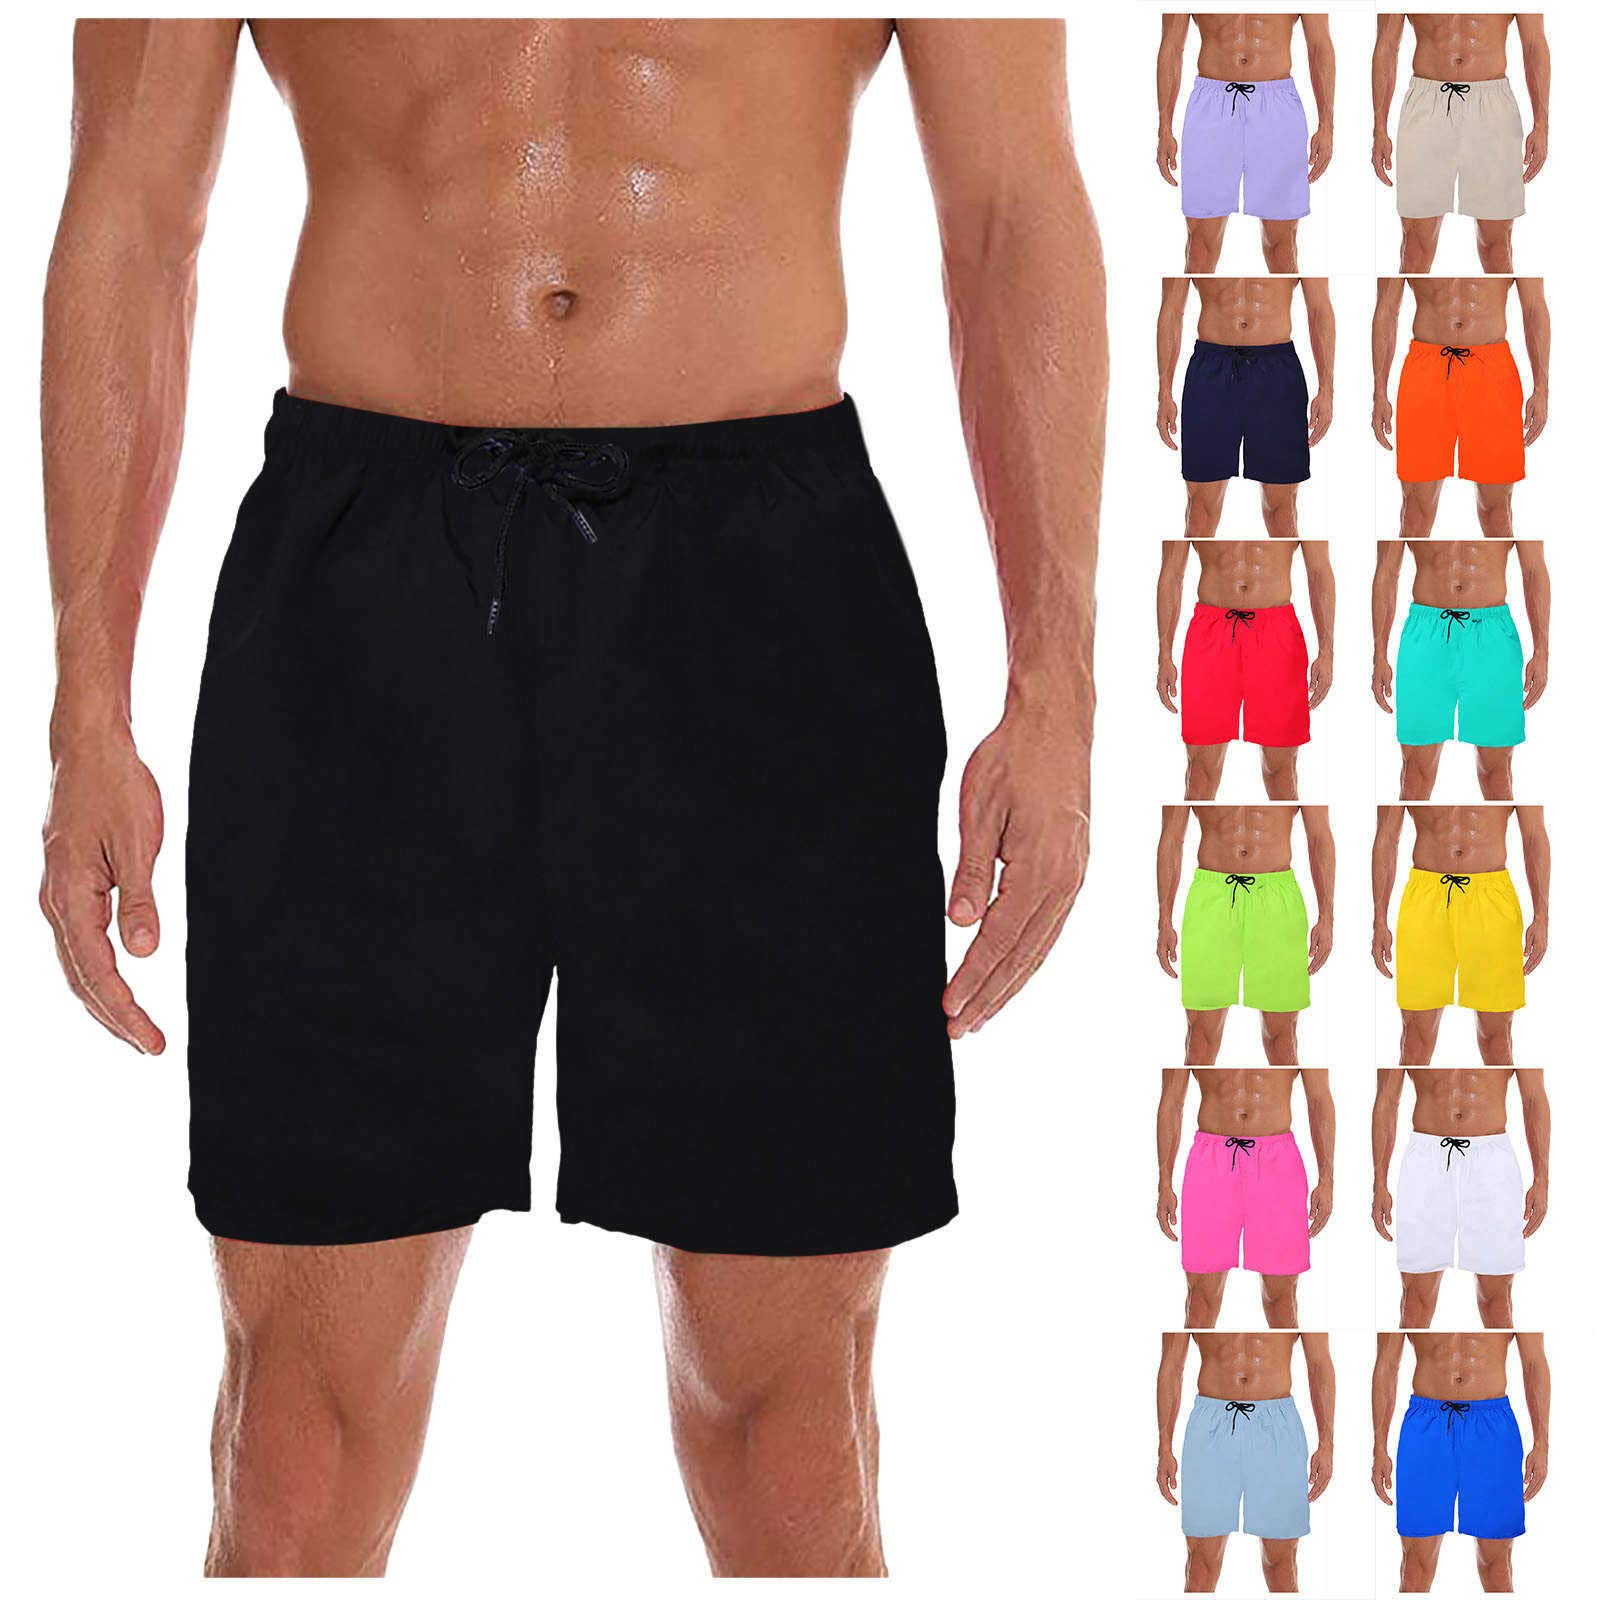 2DXuixsh Mens Quick Dry Swim Shorts Swim Trunks Drawstring Elastic Waist Bathing